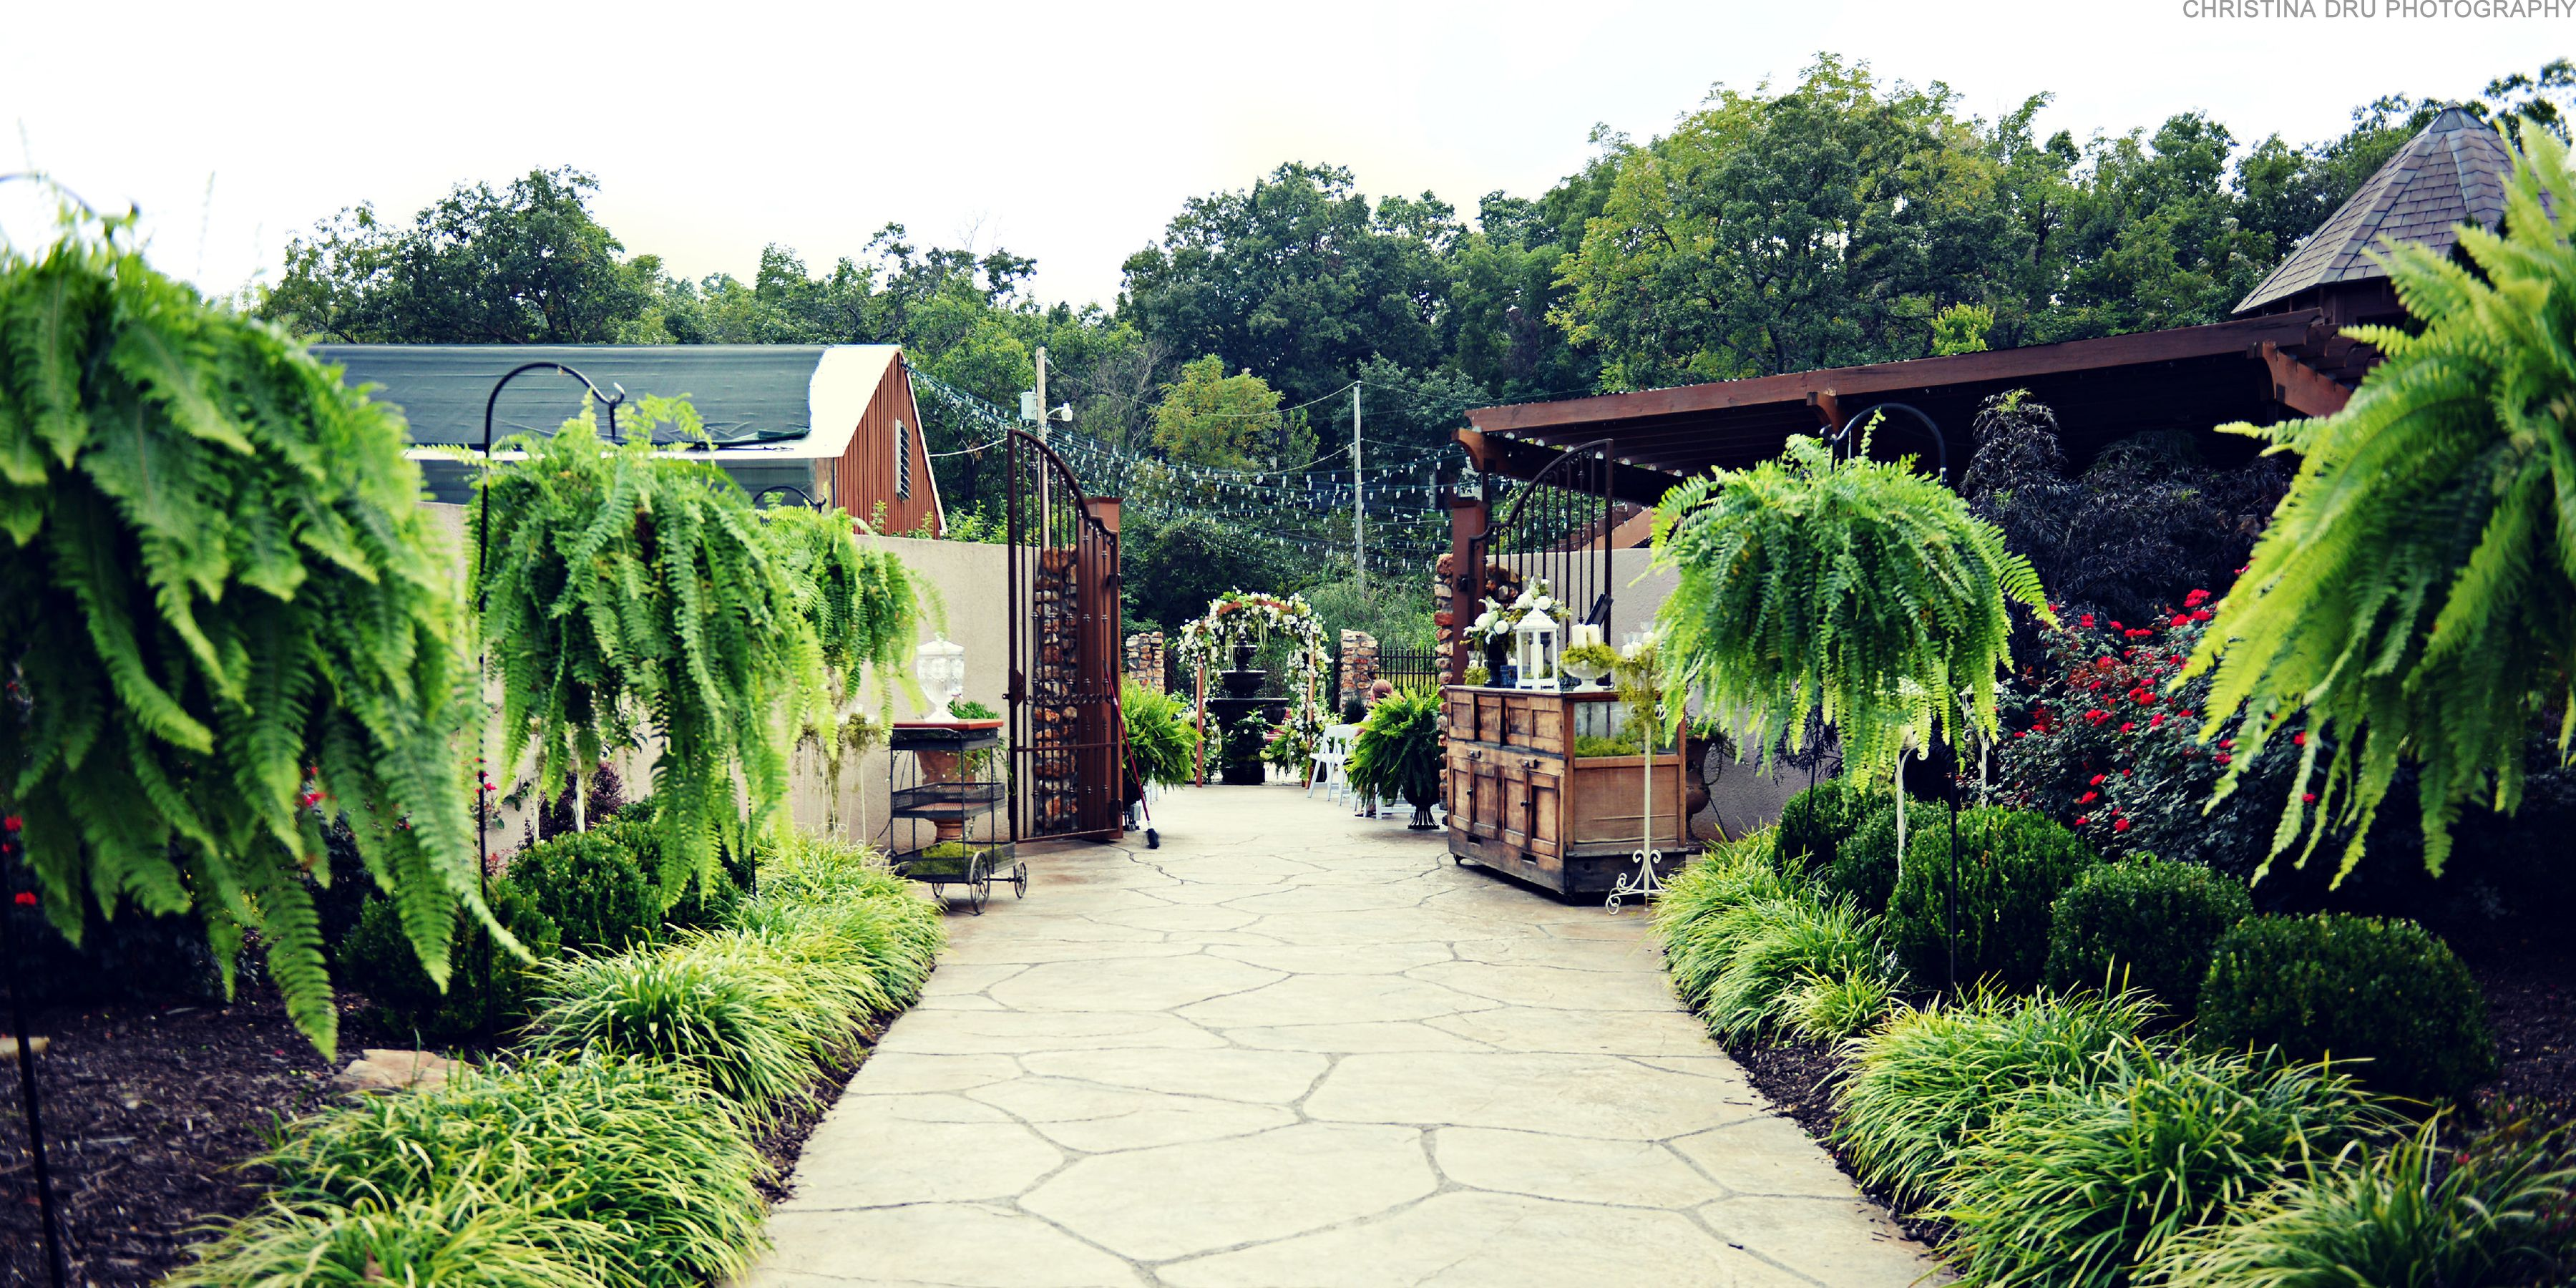 Springhouse Gardens Is An Outdoor Wedding Reception And Event Venue With The Added Convenience Of